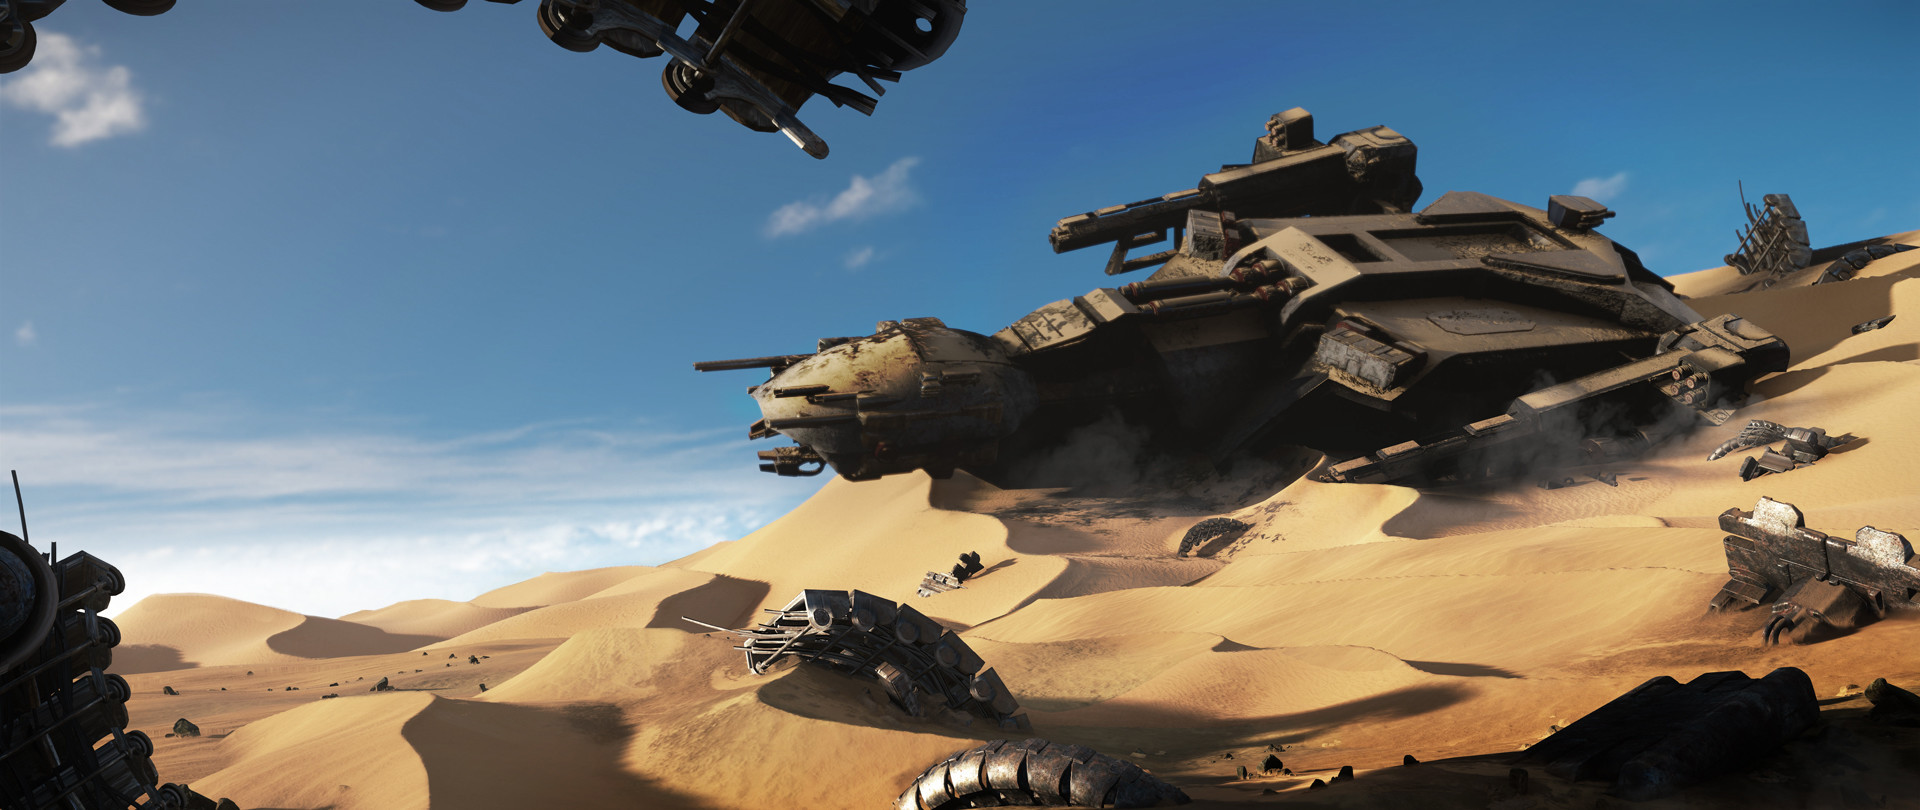 joe-garth-joe-garth-sanddunes-spaceship-